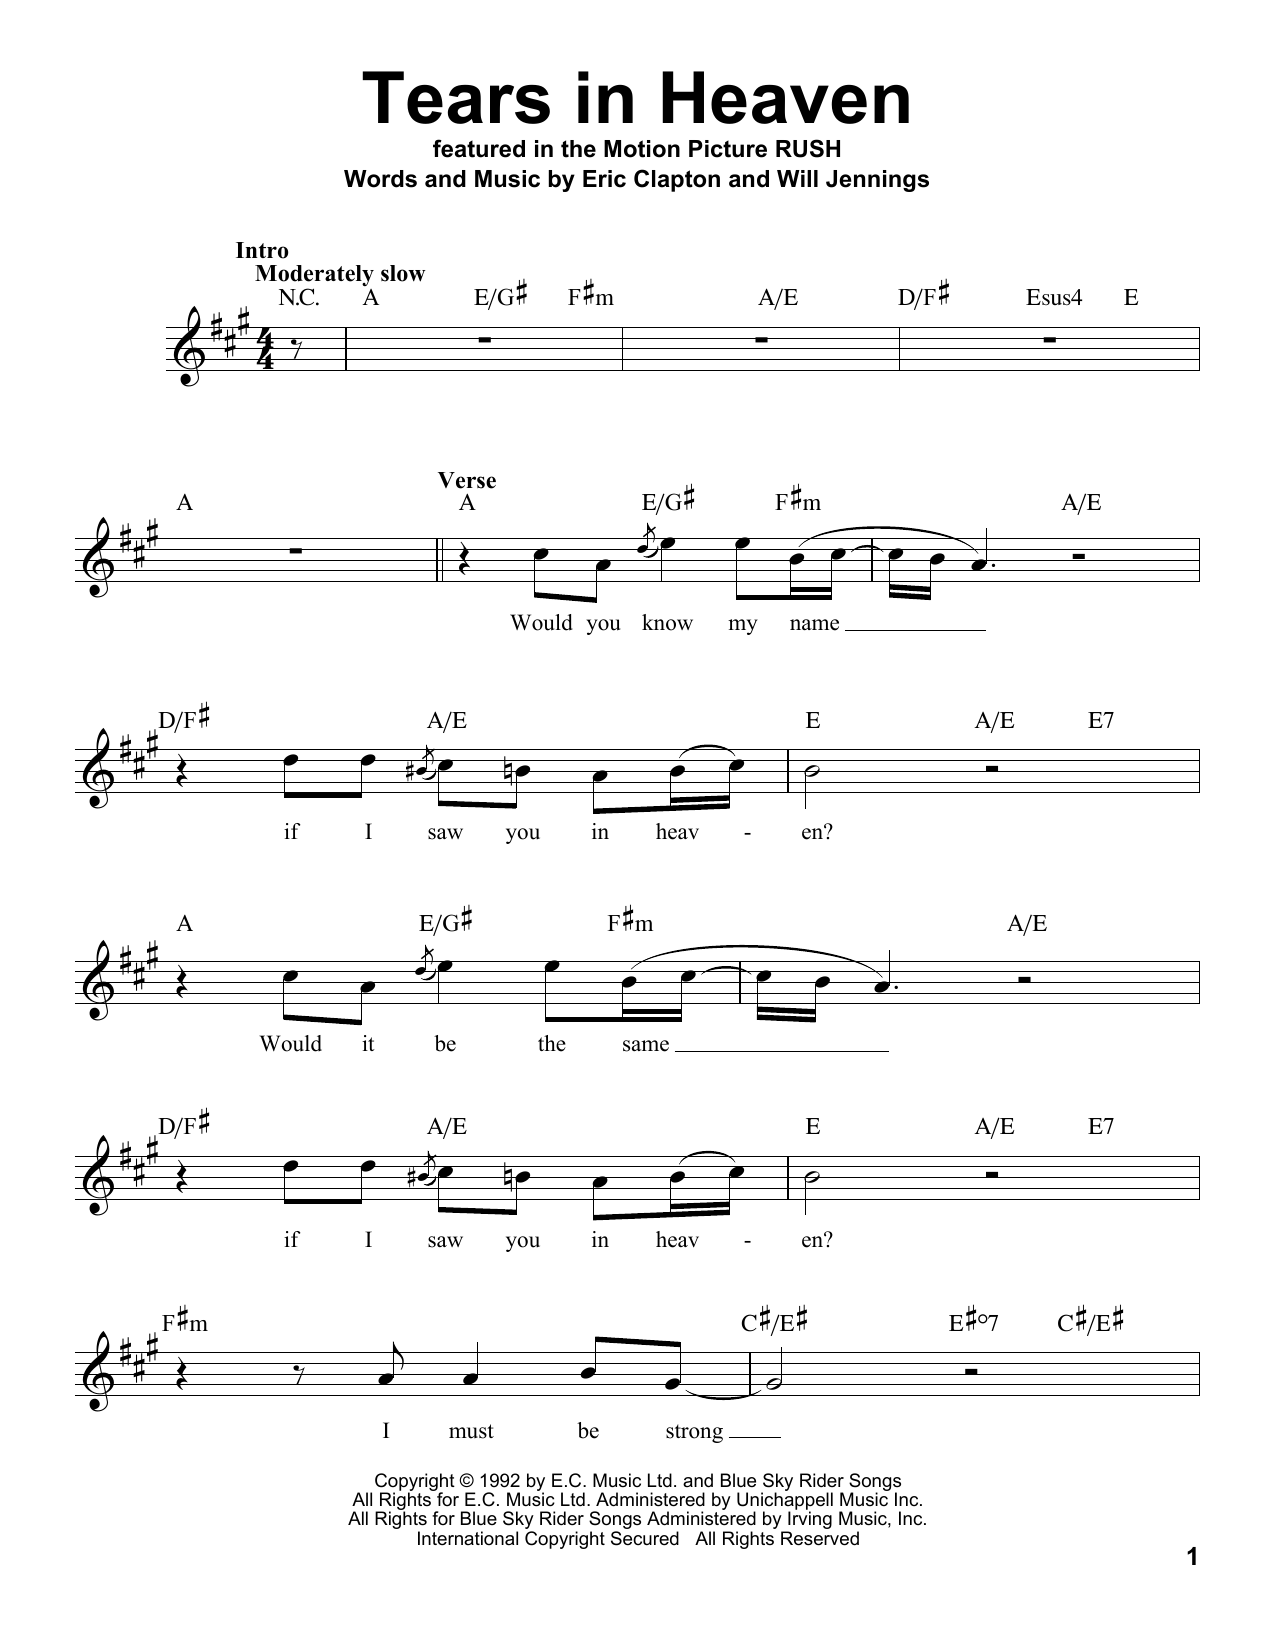 Eric Clapton Tears In Heaven Piano Sing Pop Vocal Choral Voice SHEET Music